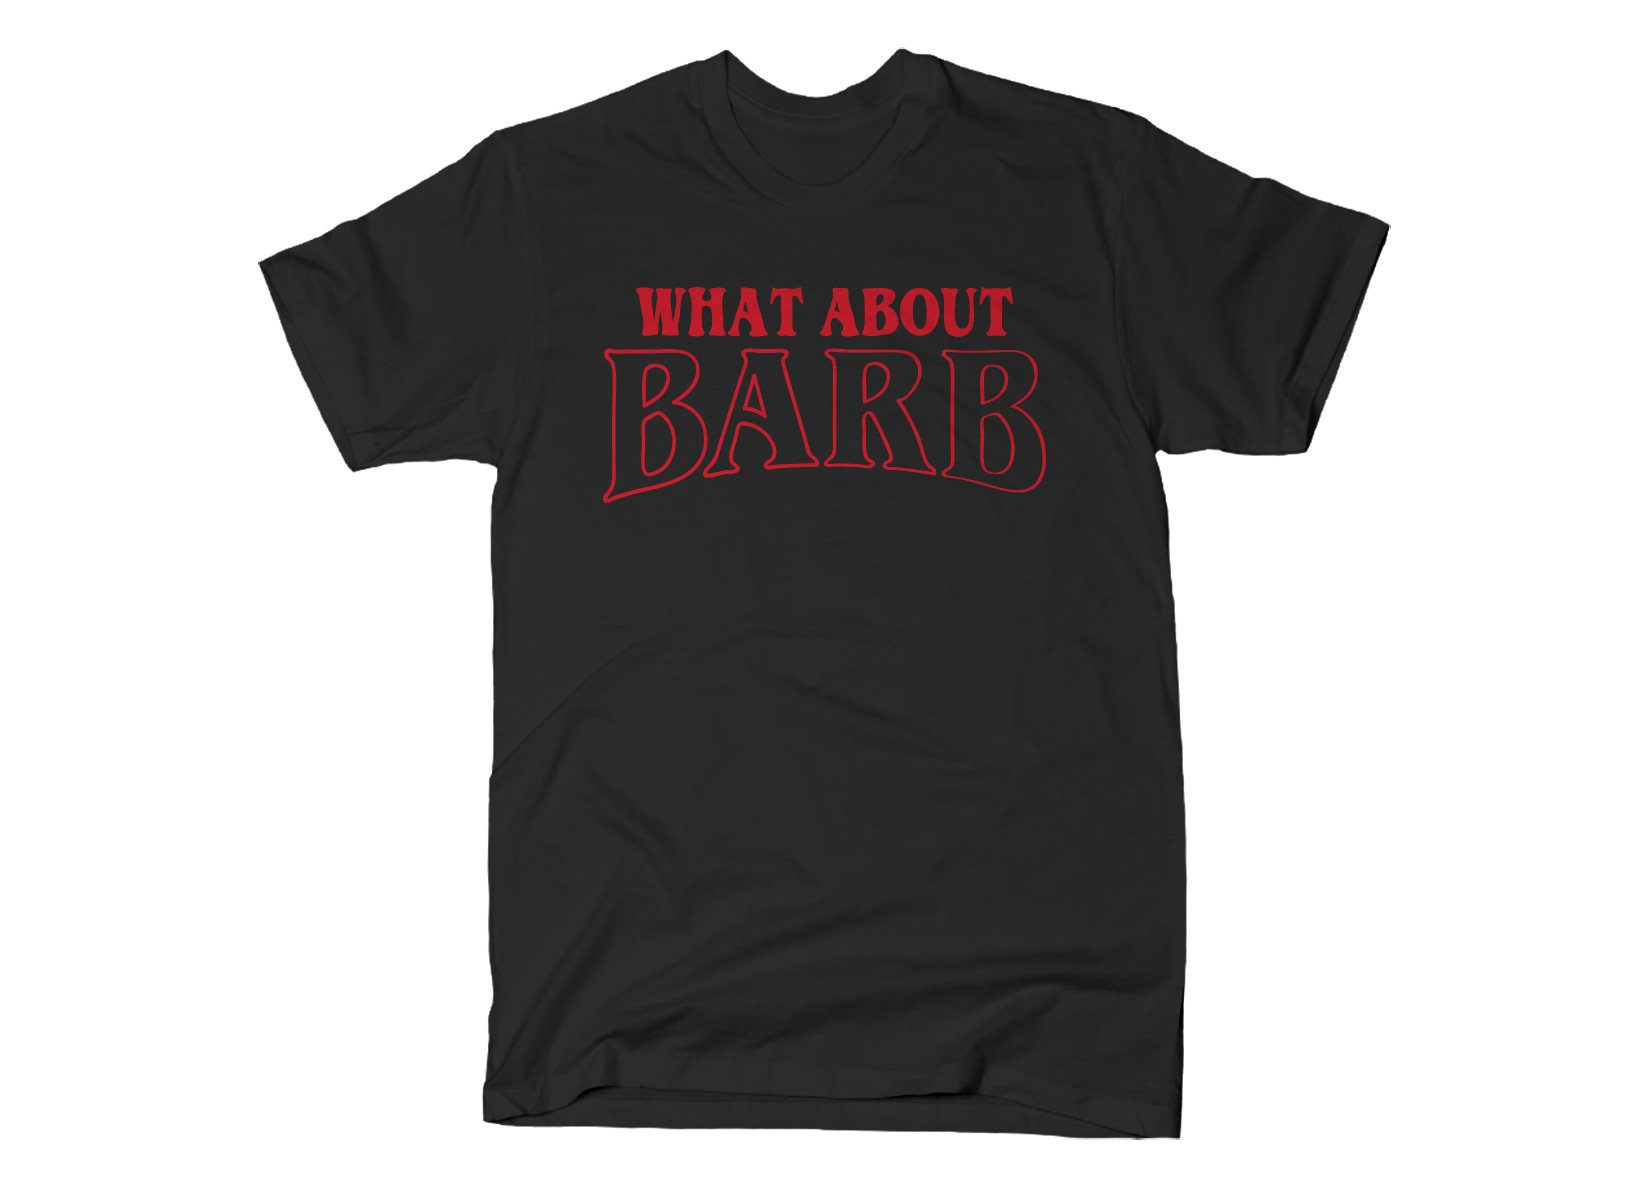 What About Barb? on Mens T-Shirt